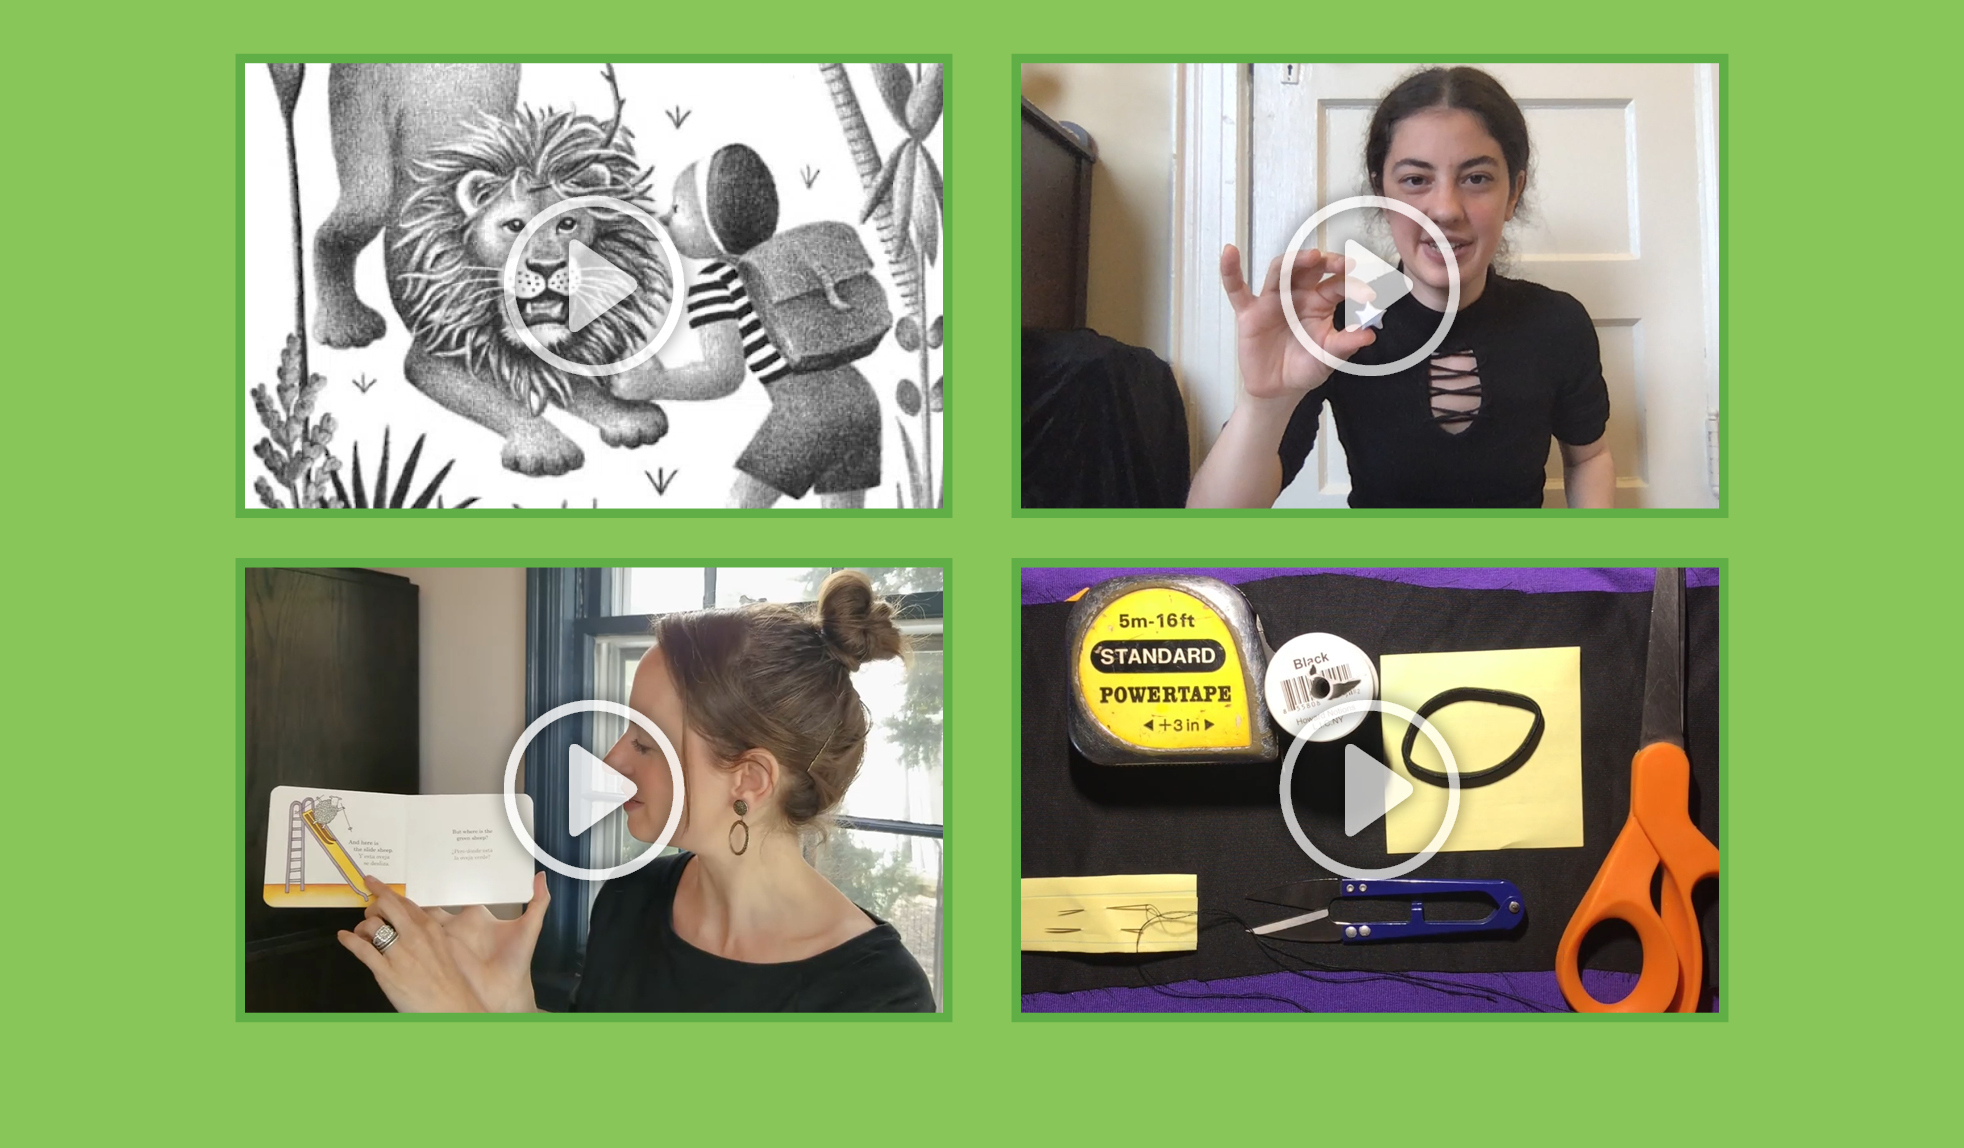 Have you discovered our on-demand videos? Children's programming, how-to videos and more!